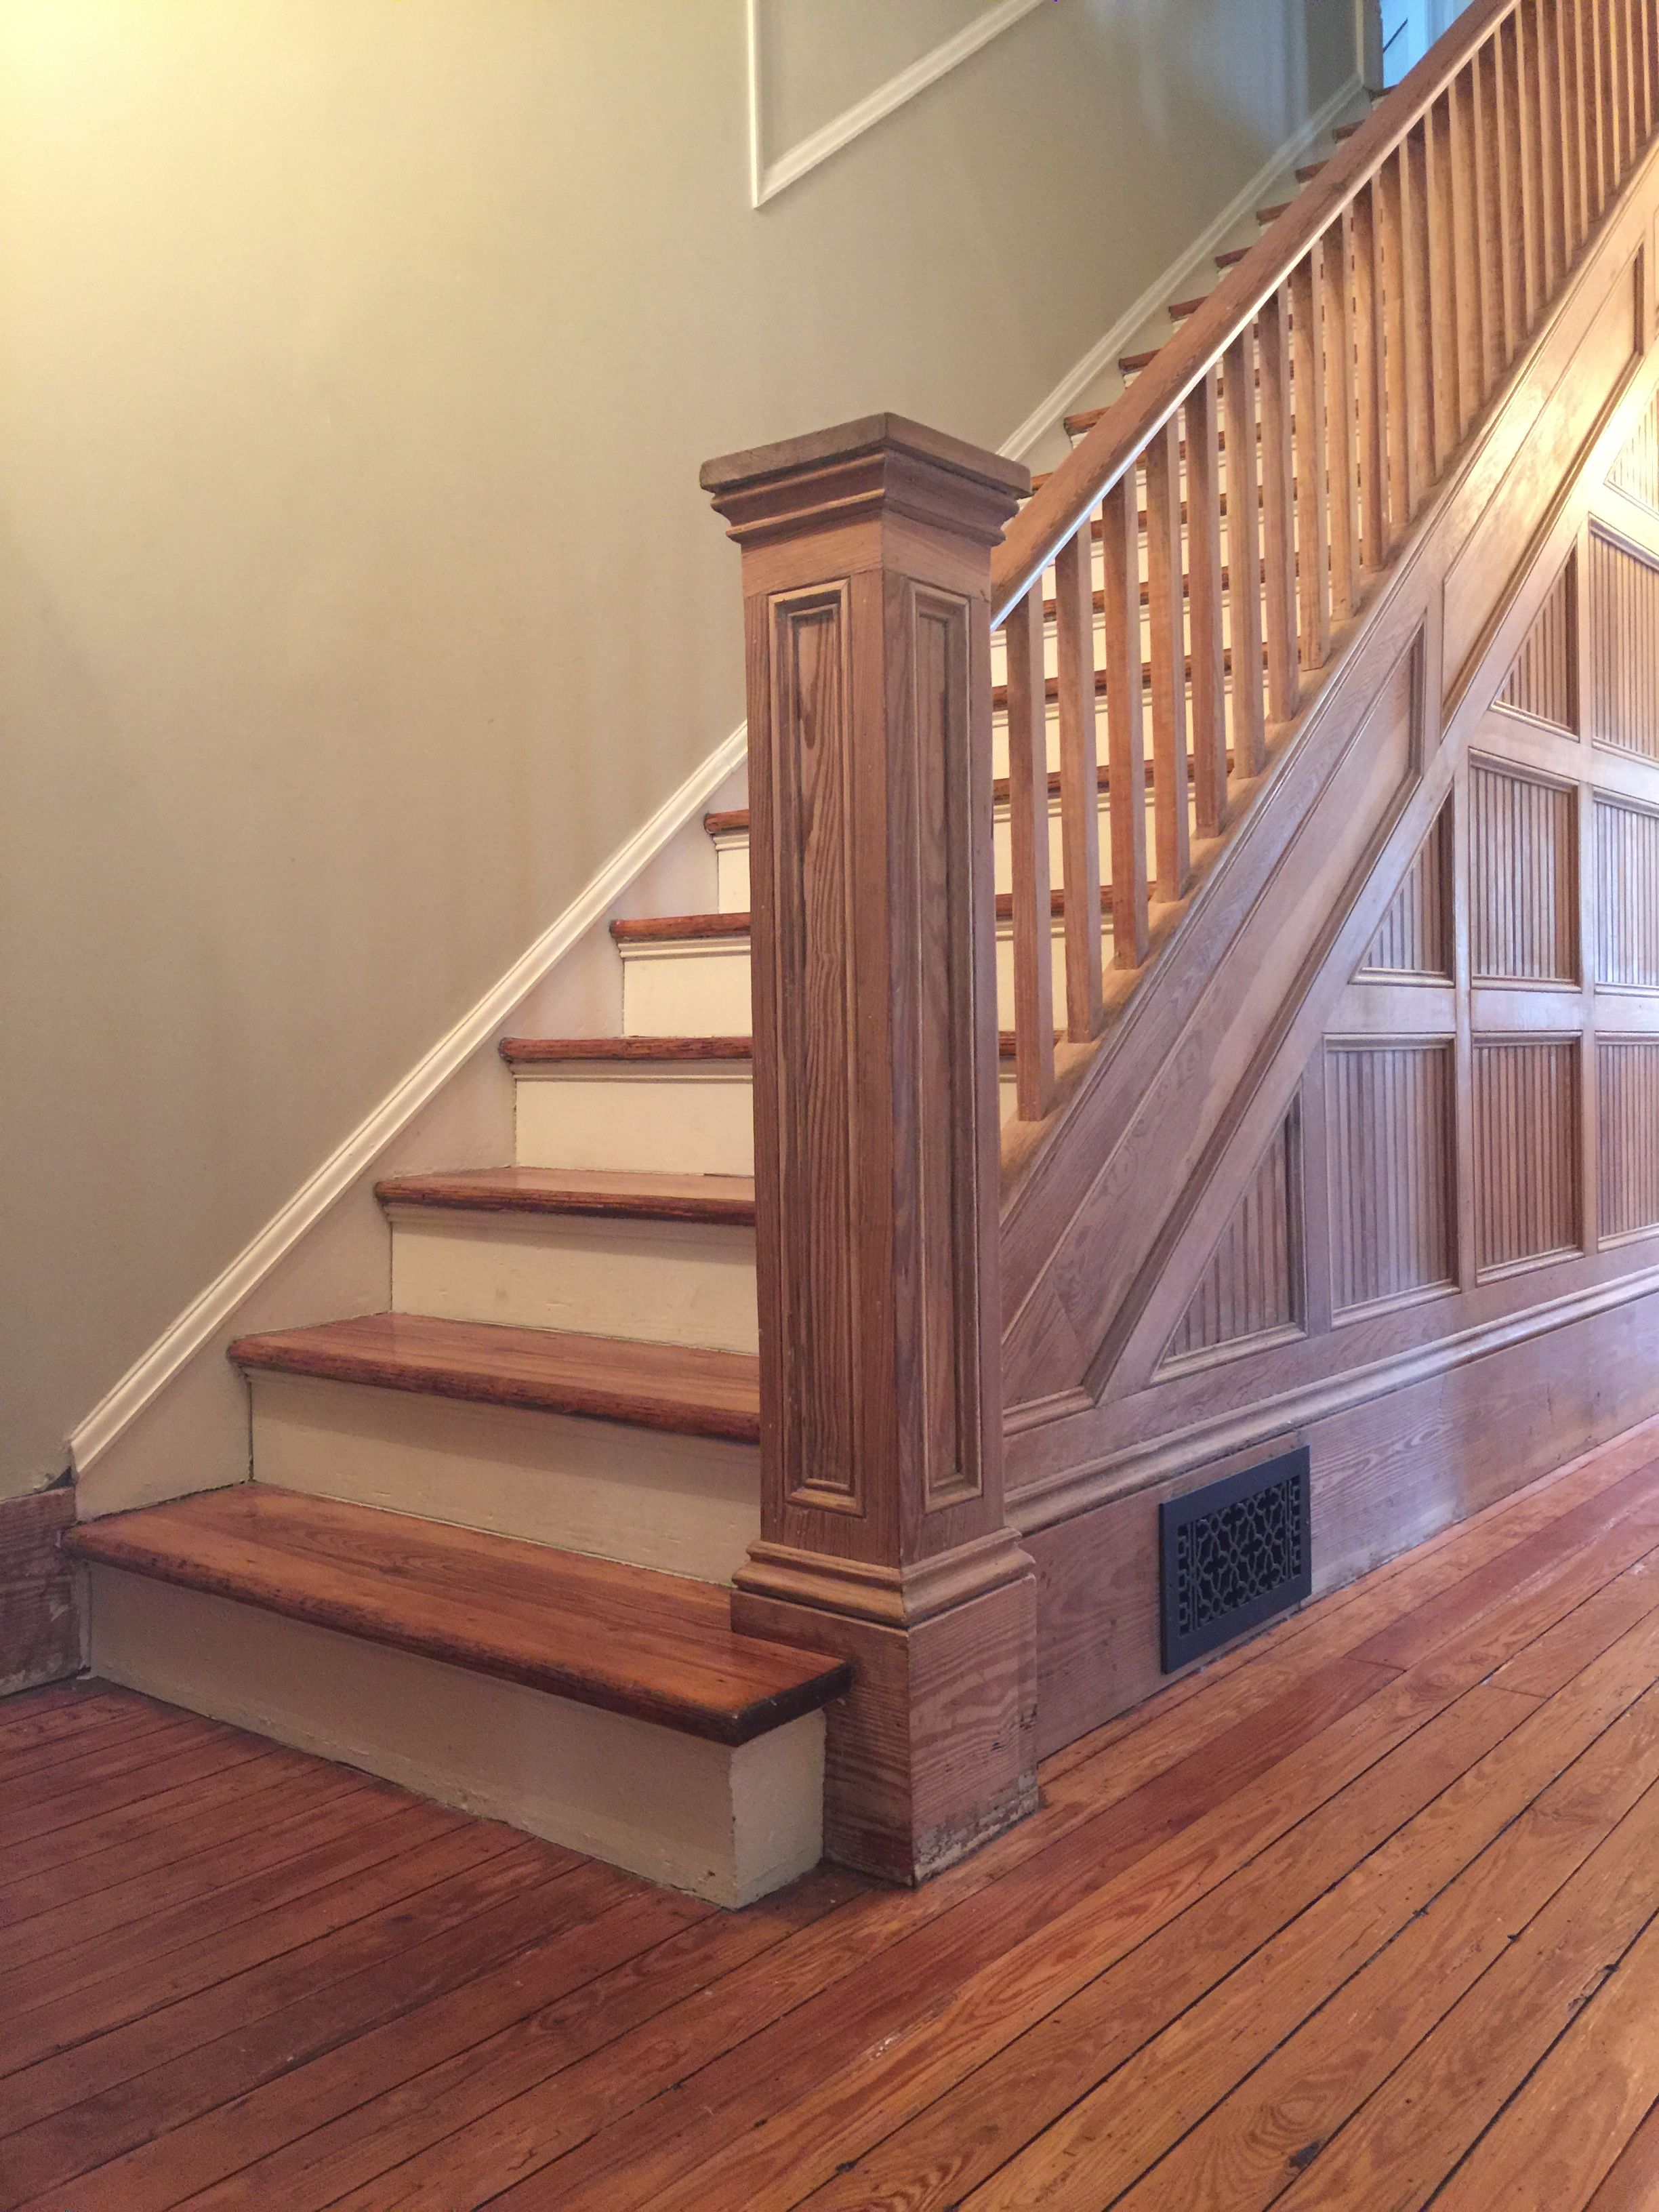 Victorian Farmhouse Stairwell With Lights On